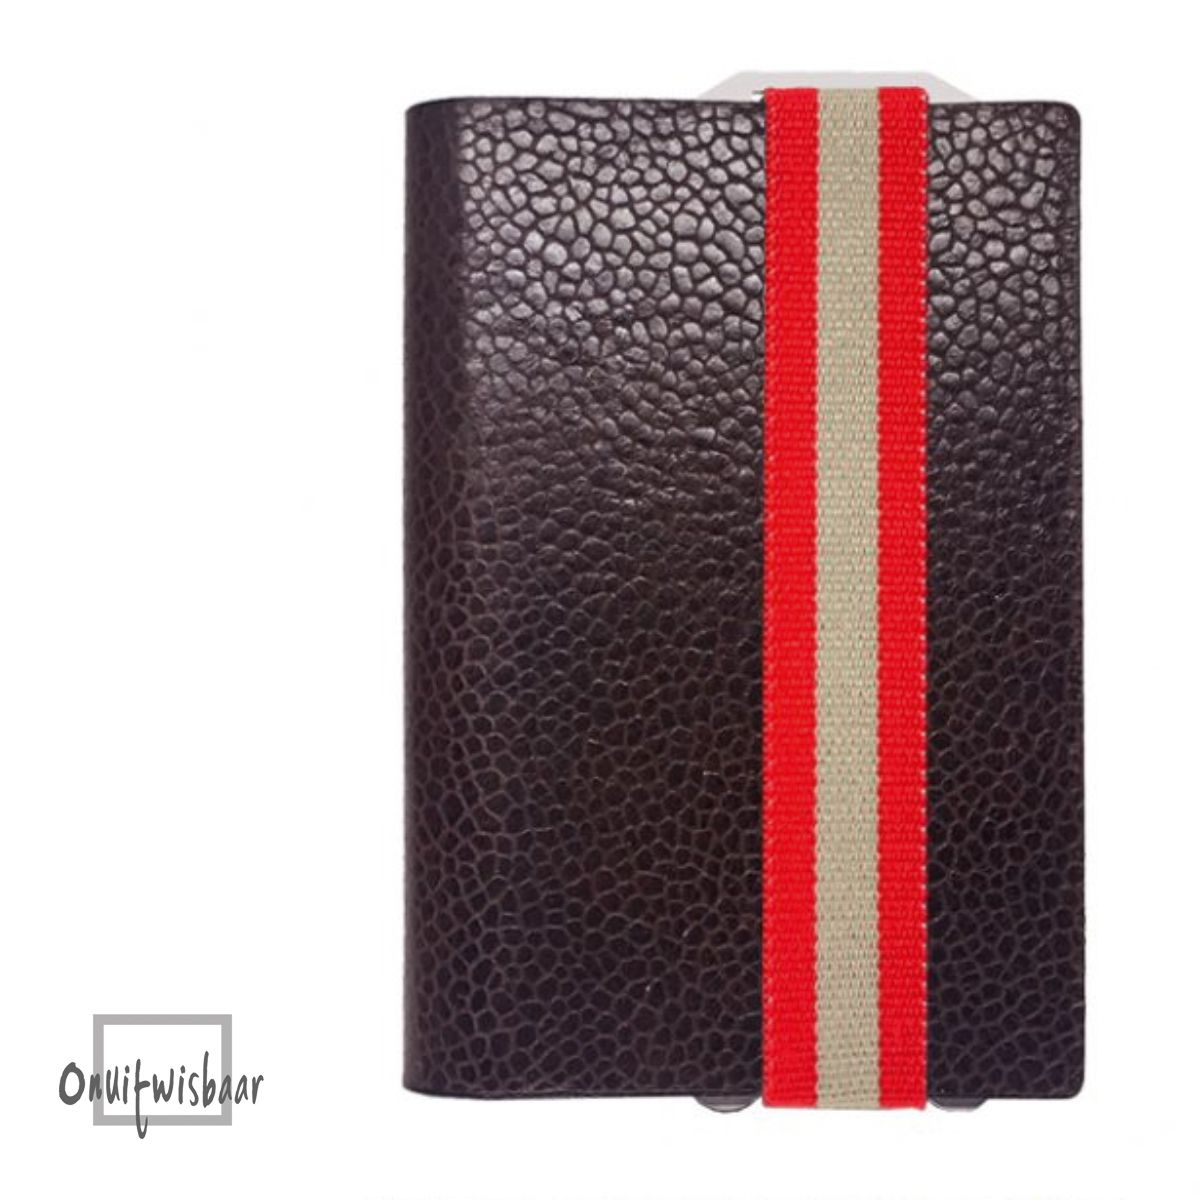 q7 wallet classy brown red